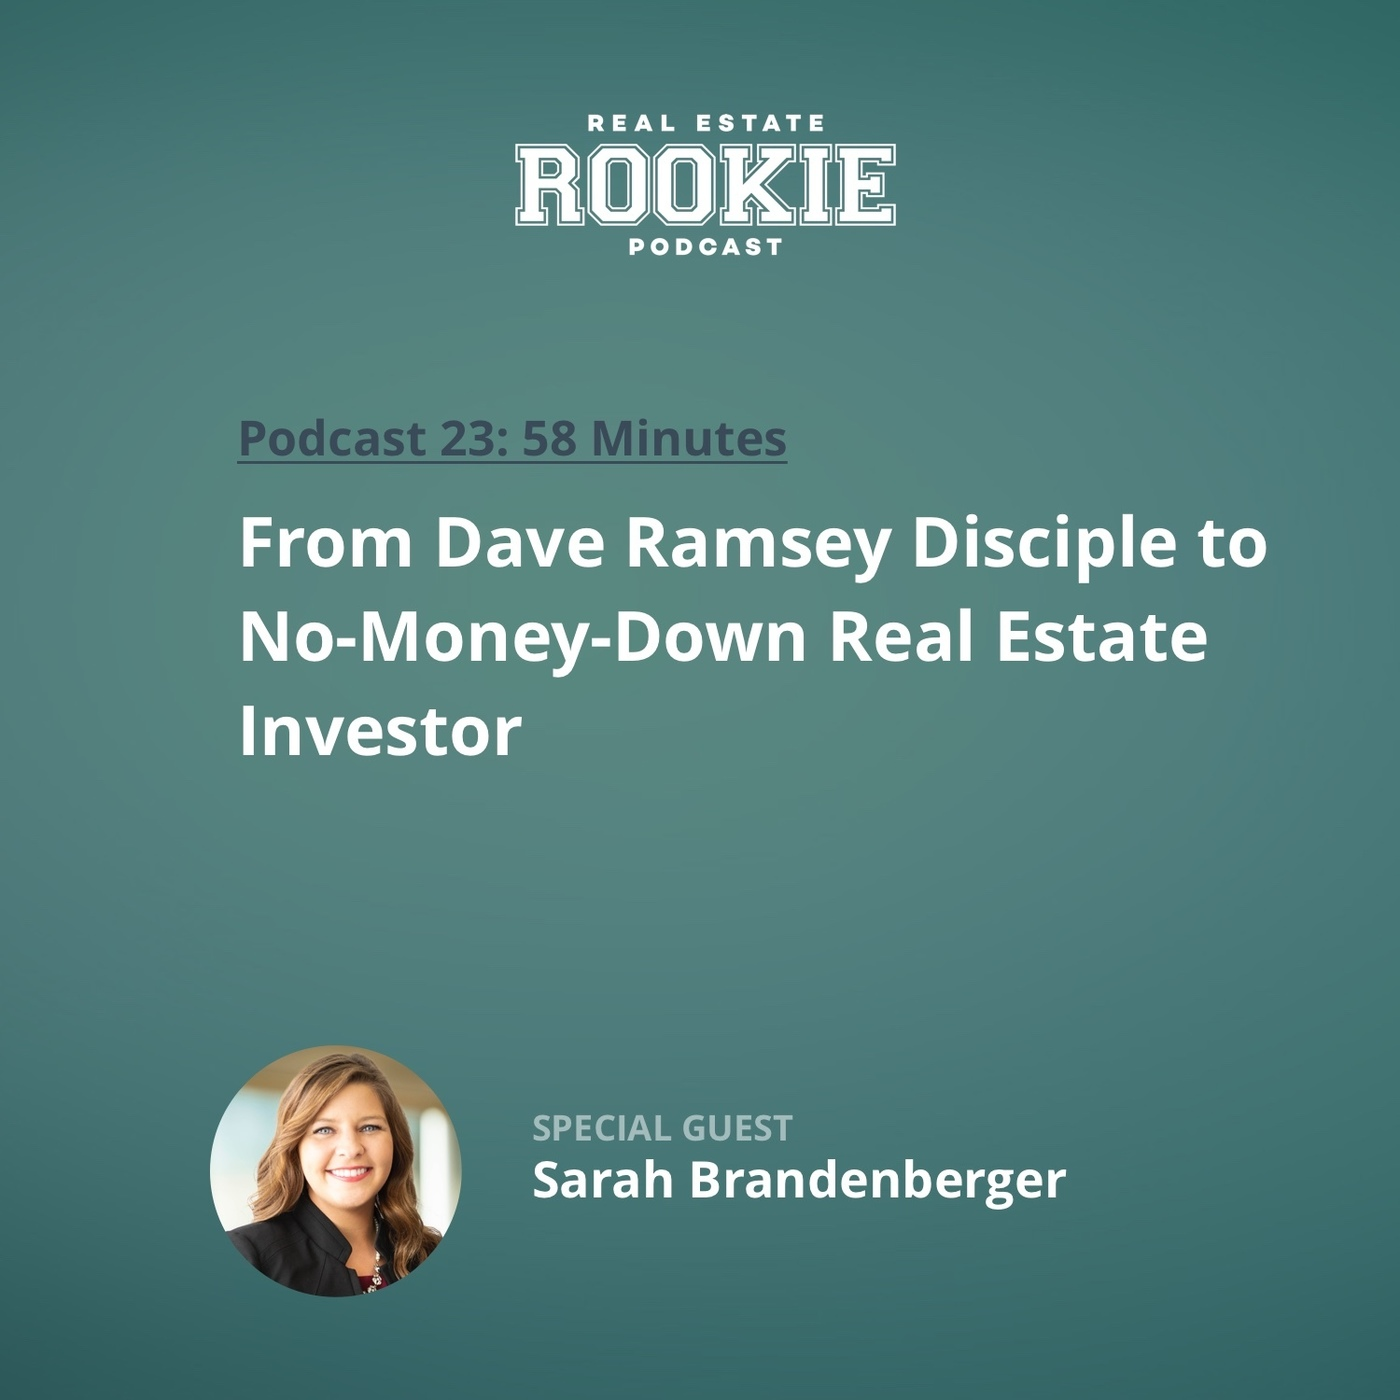 From Dave Ramsey Disciple to No-Money-Down Real Estate Investor with Sarah Brandenberger